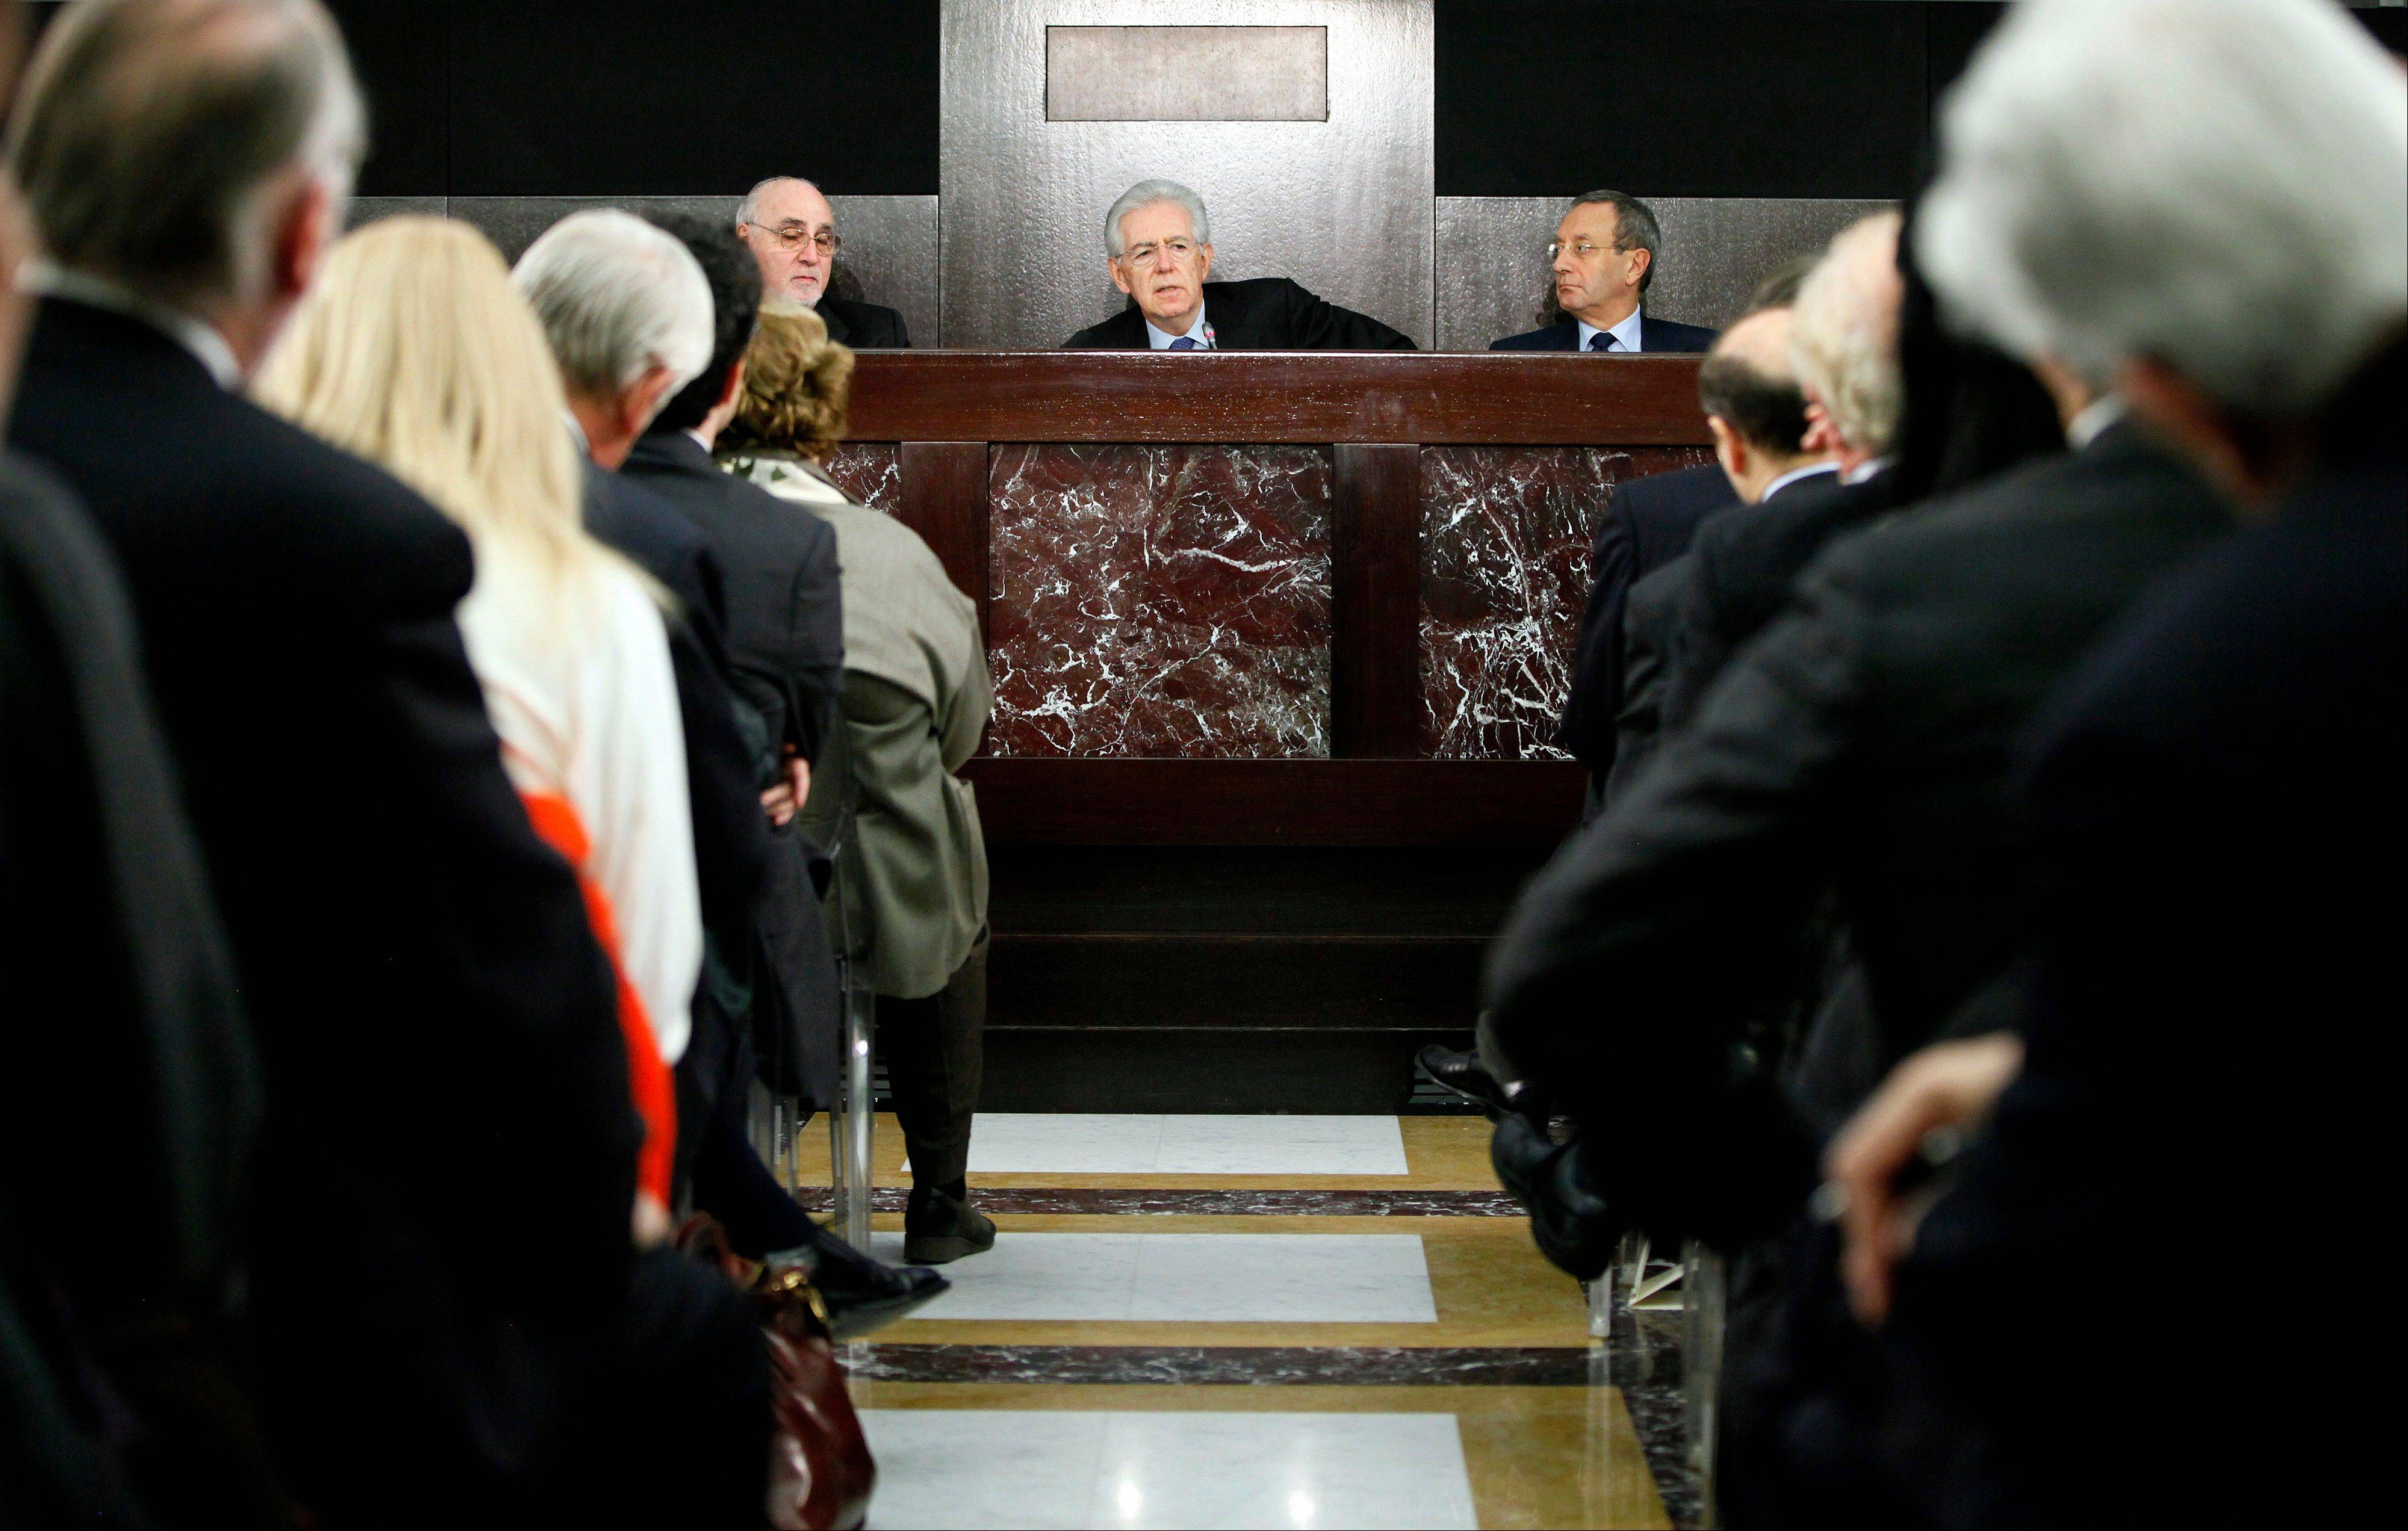 Mario Monti, Italy's prime minister, center, speaks during his end-of-year news conference in Rome, Italy, on Sunday, Dec. 23, 2012. Monti said he won't run in the country's next elections, though he would agree to serve again as prime minister if a coalition backing his economic agenda won the vote.